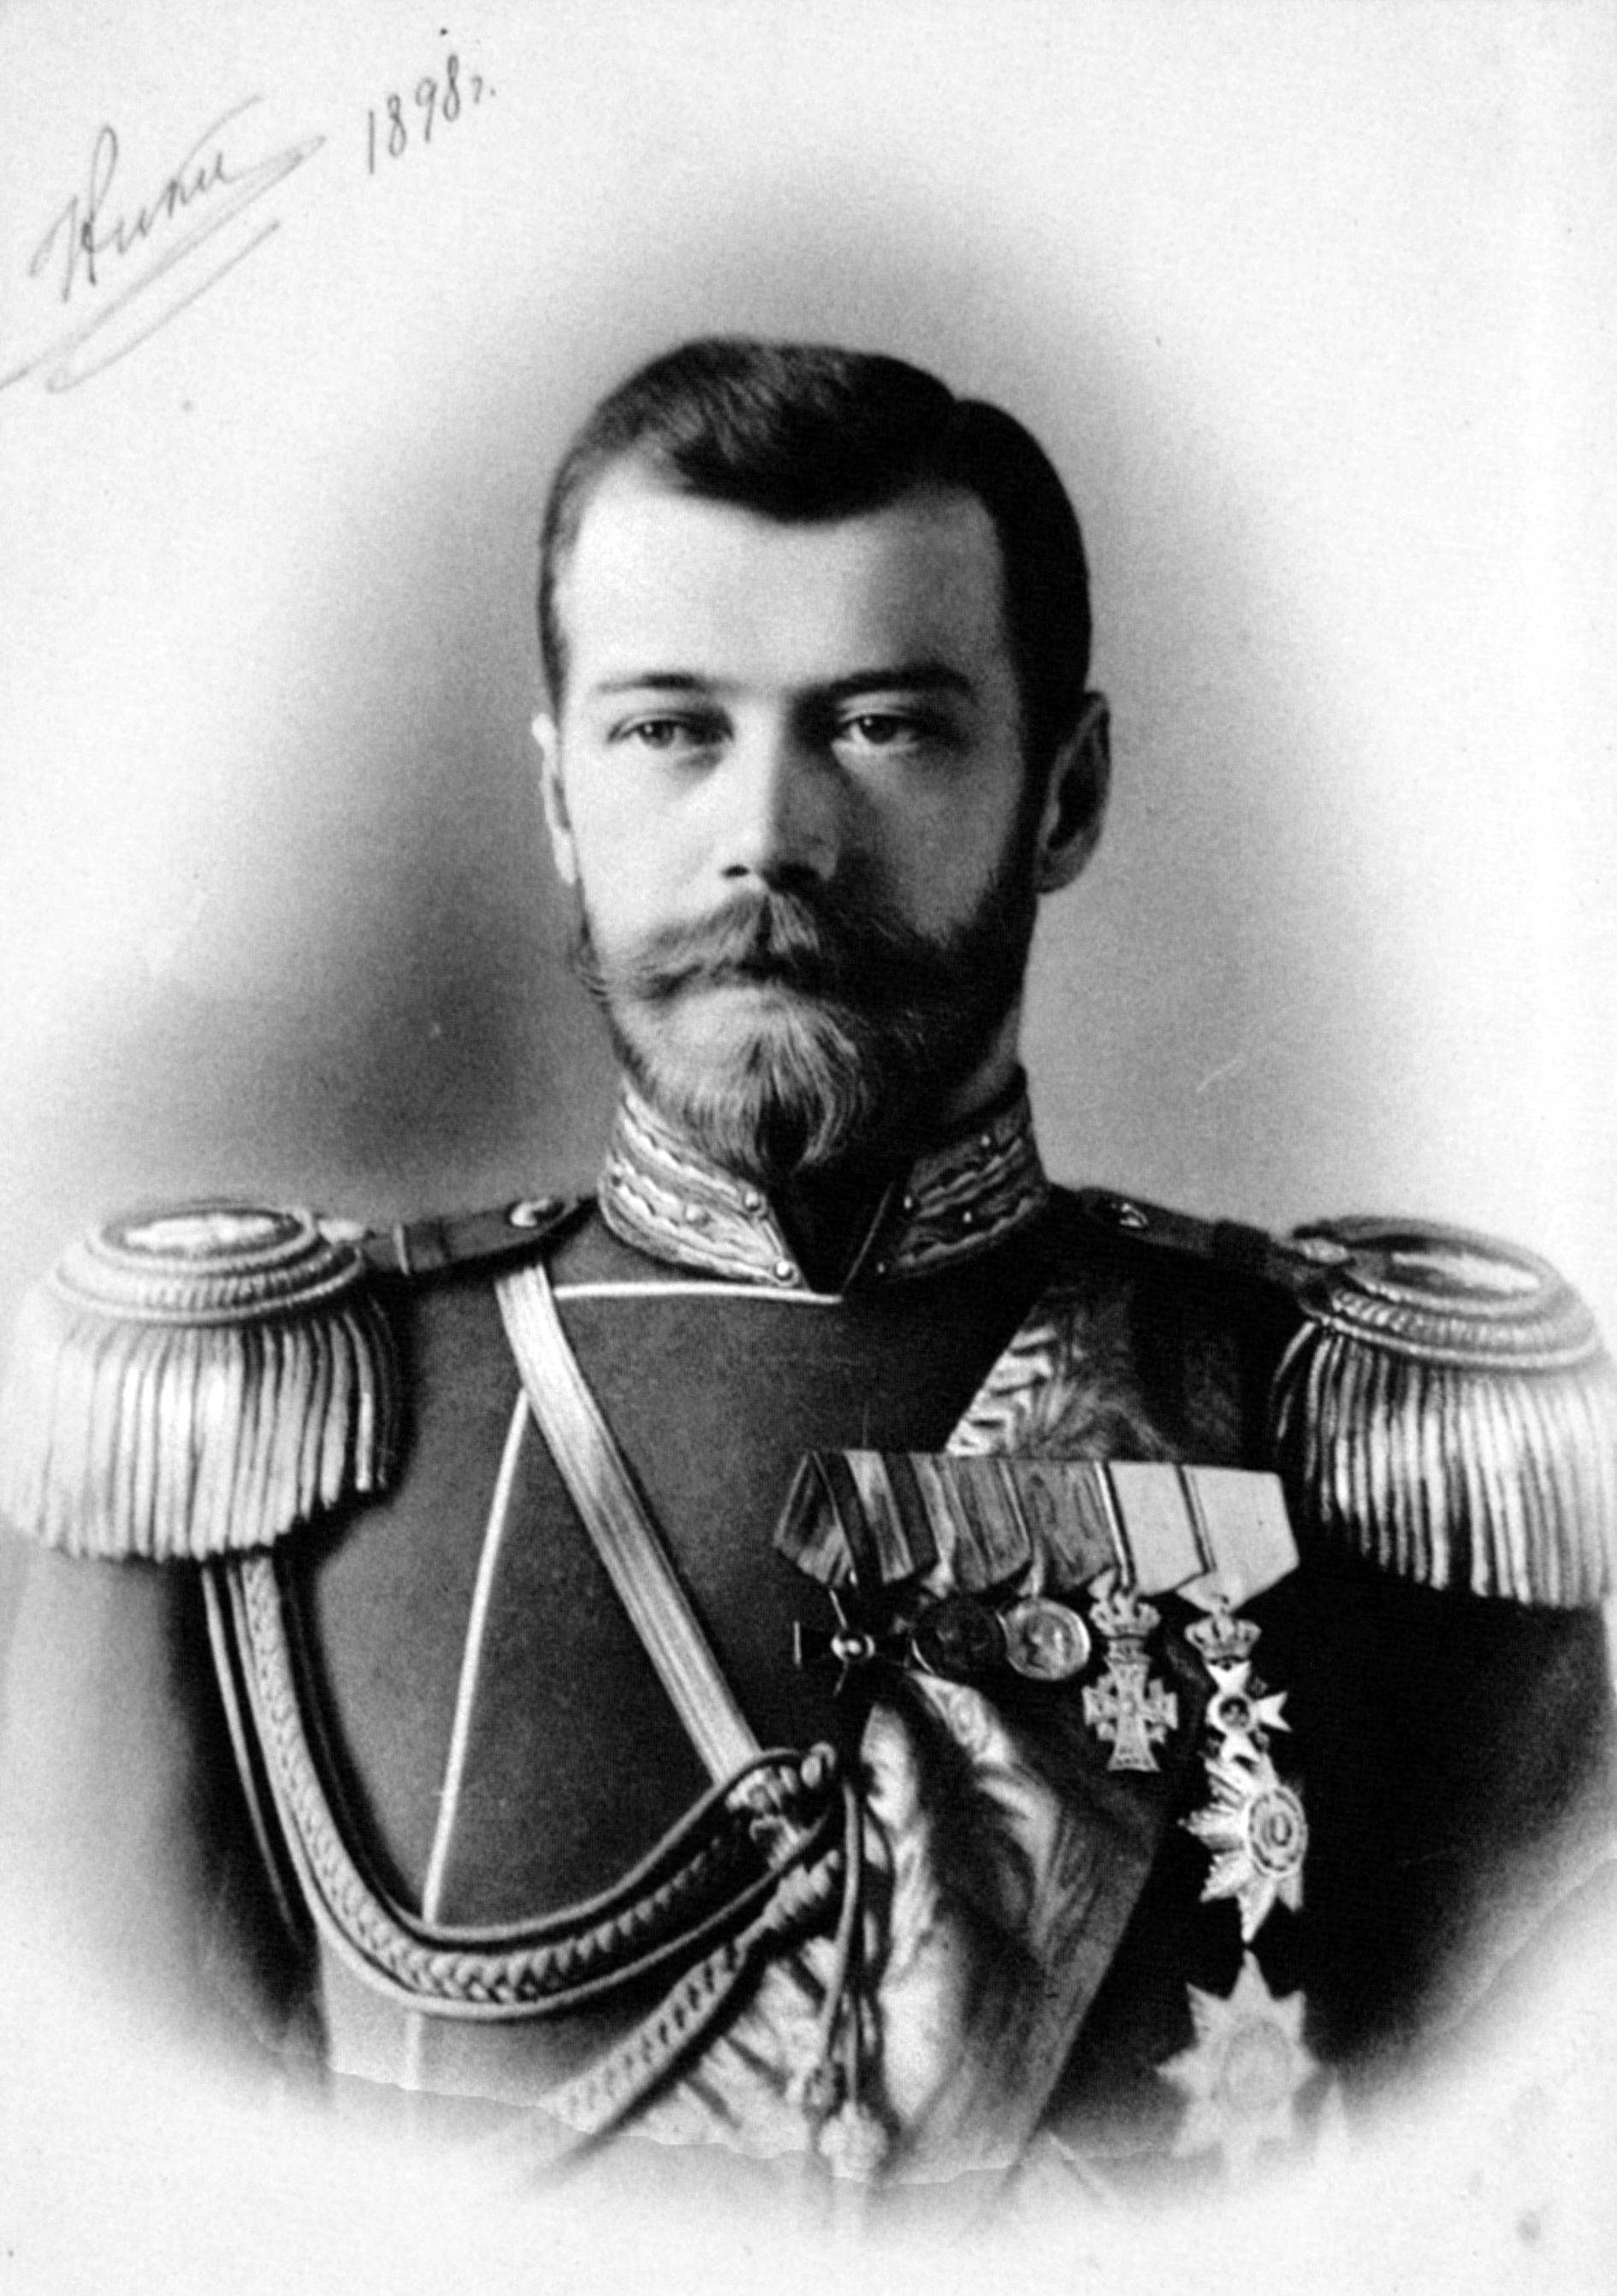 a biography of grand duchess anastasia nicholaevna the last ruler of tzar russia He was also the king of poland and grand duke of finland   and frequent wars that culminated in russia's disastrous defeat in the crimean war of 1853–56.